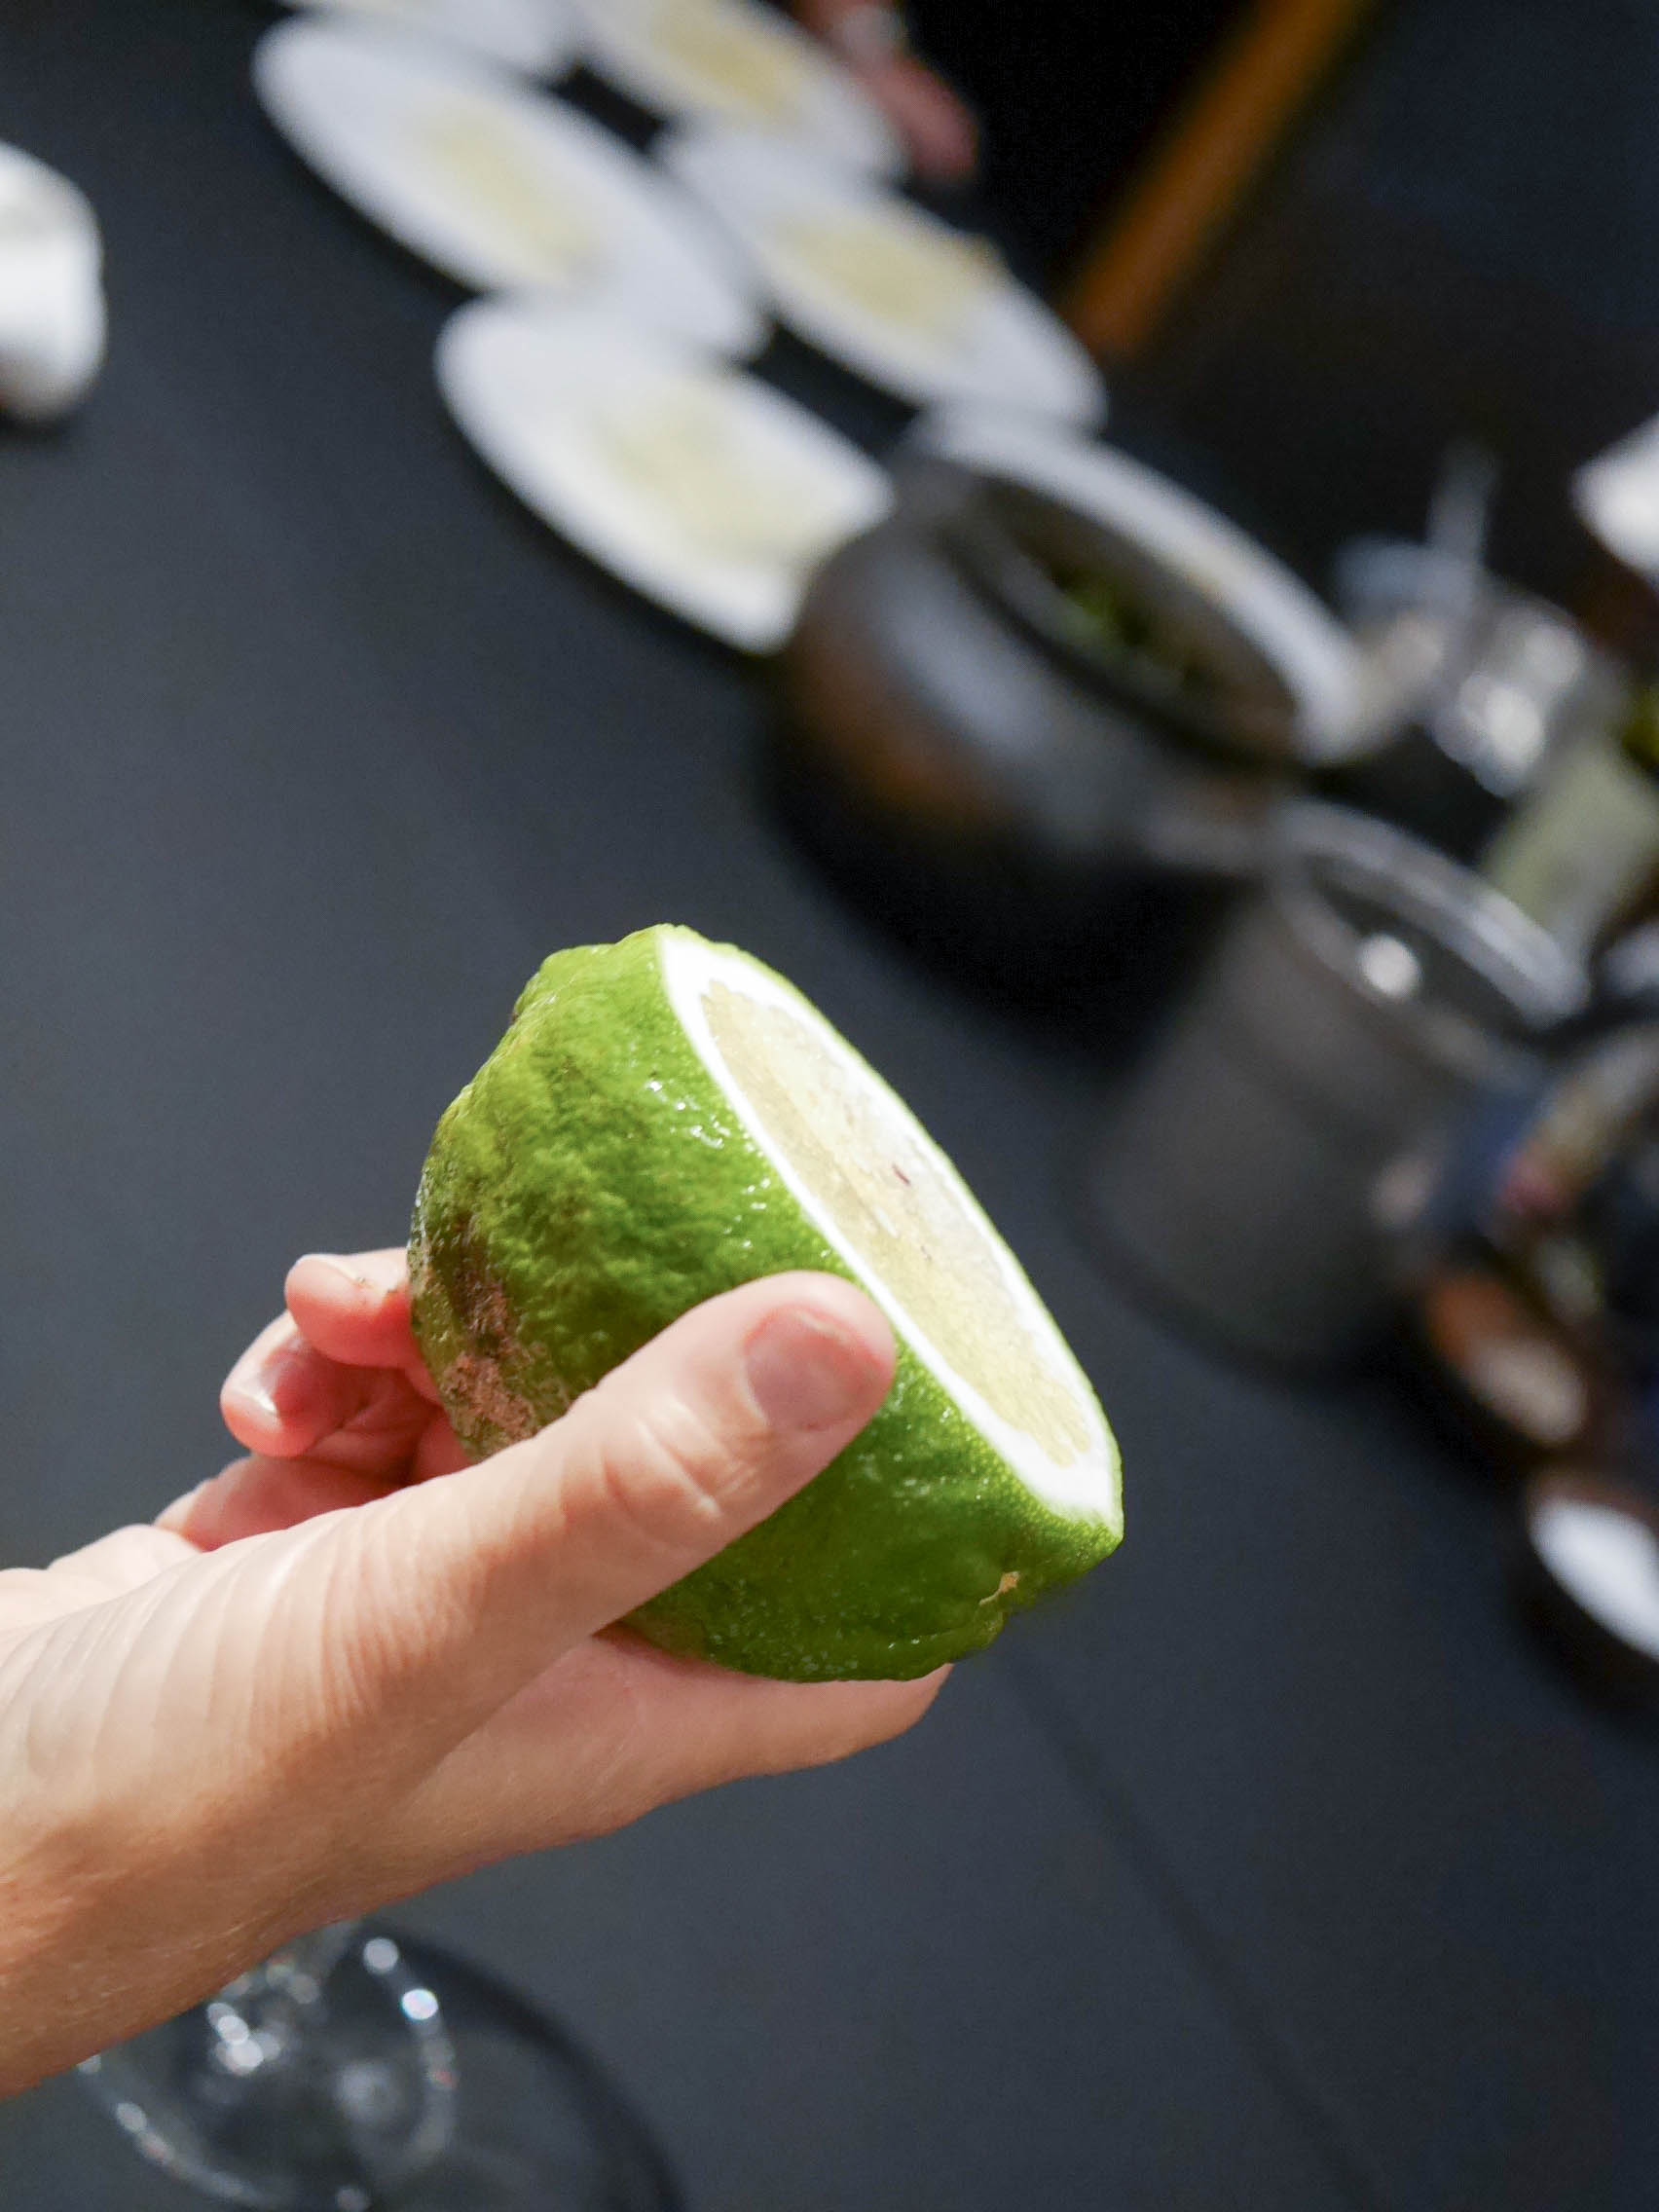 Giant Peruvian lime